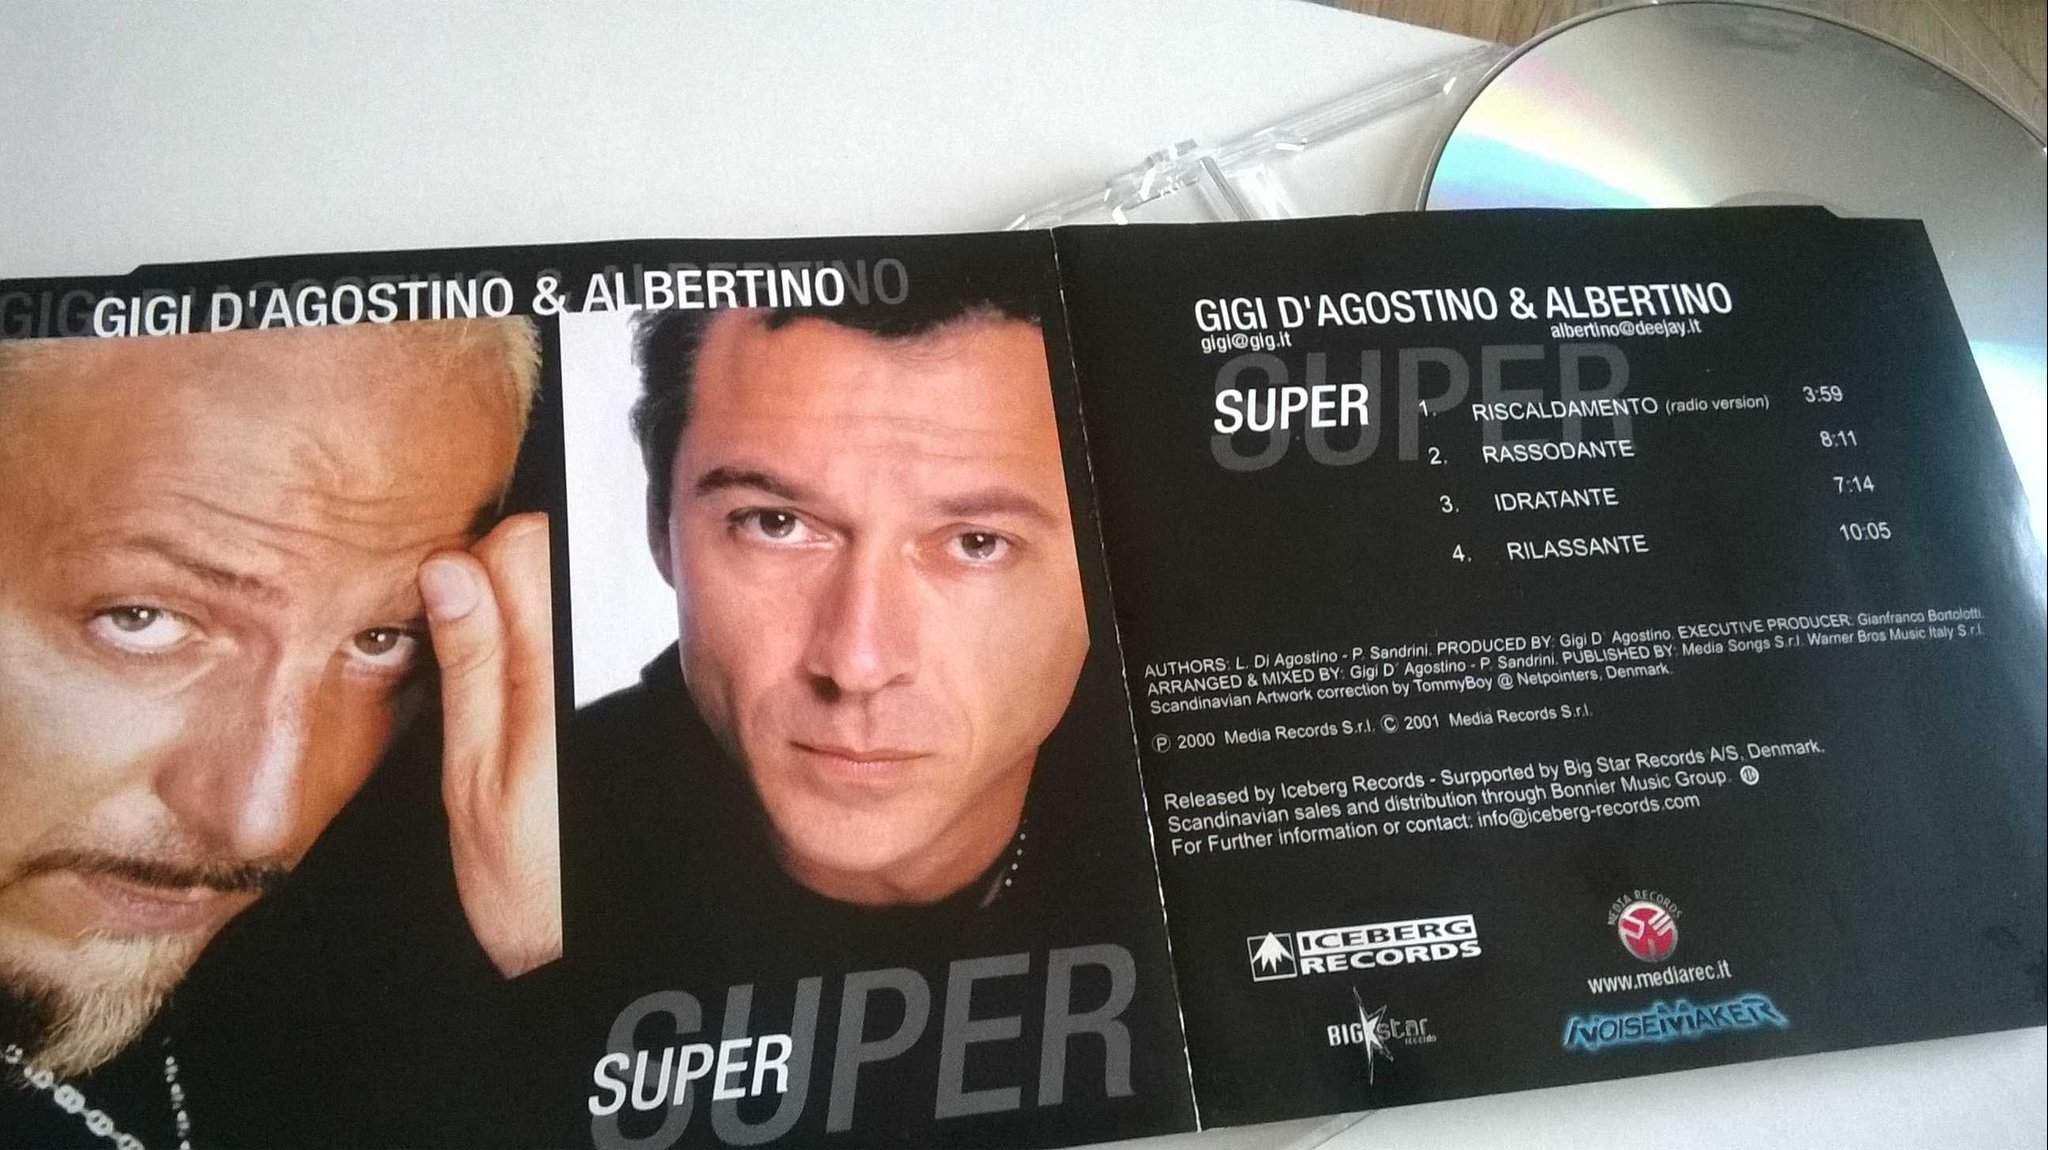 Gigi D'Agostino & Albertino, CD, Maxi-Single